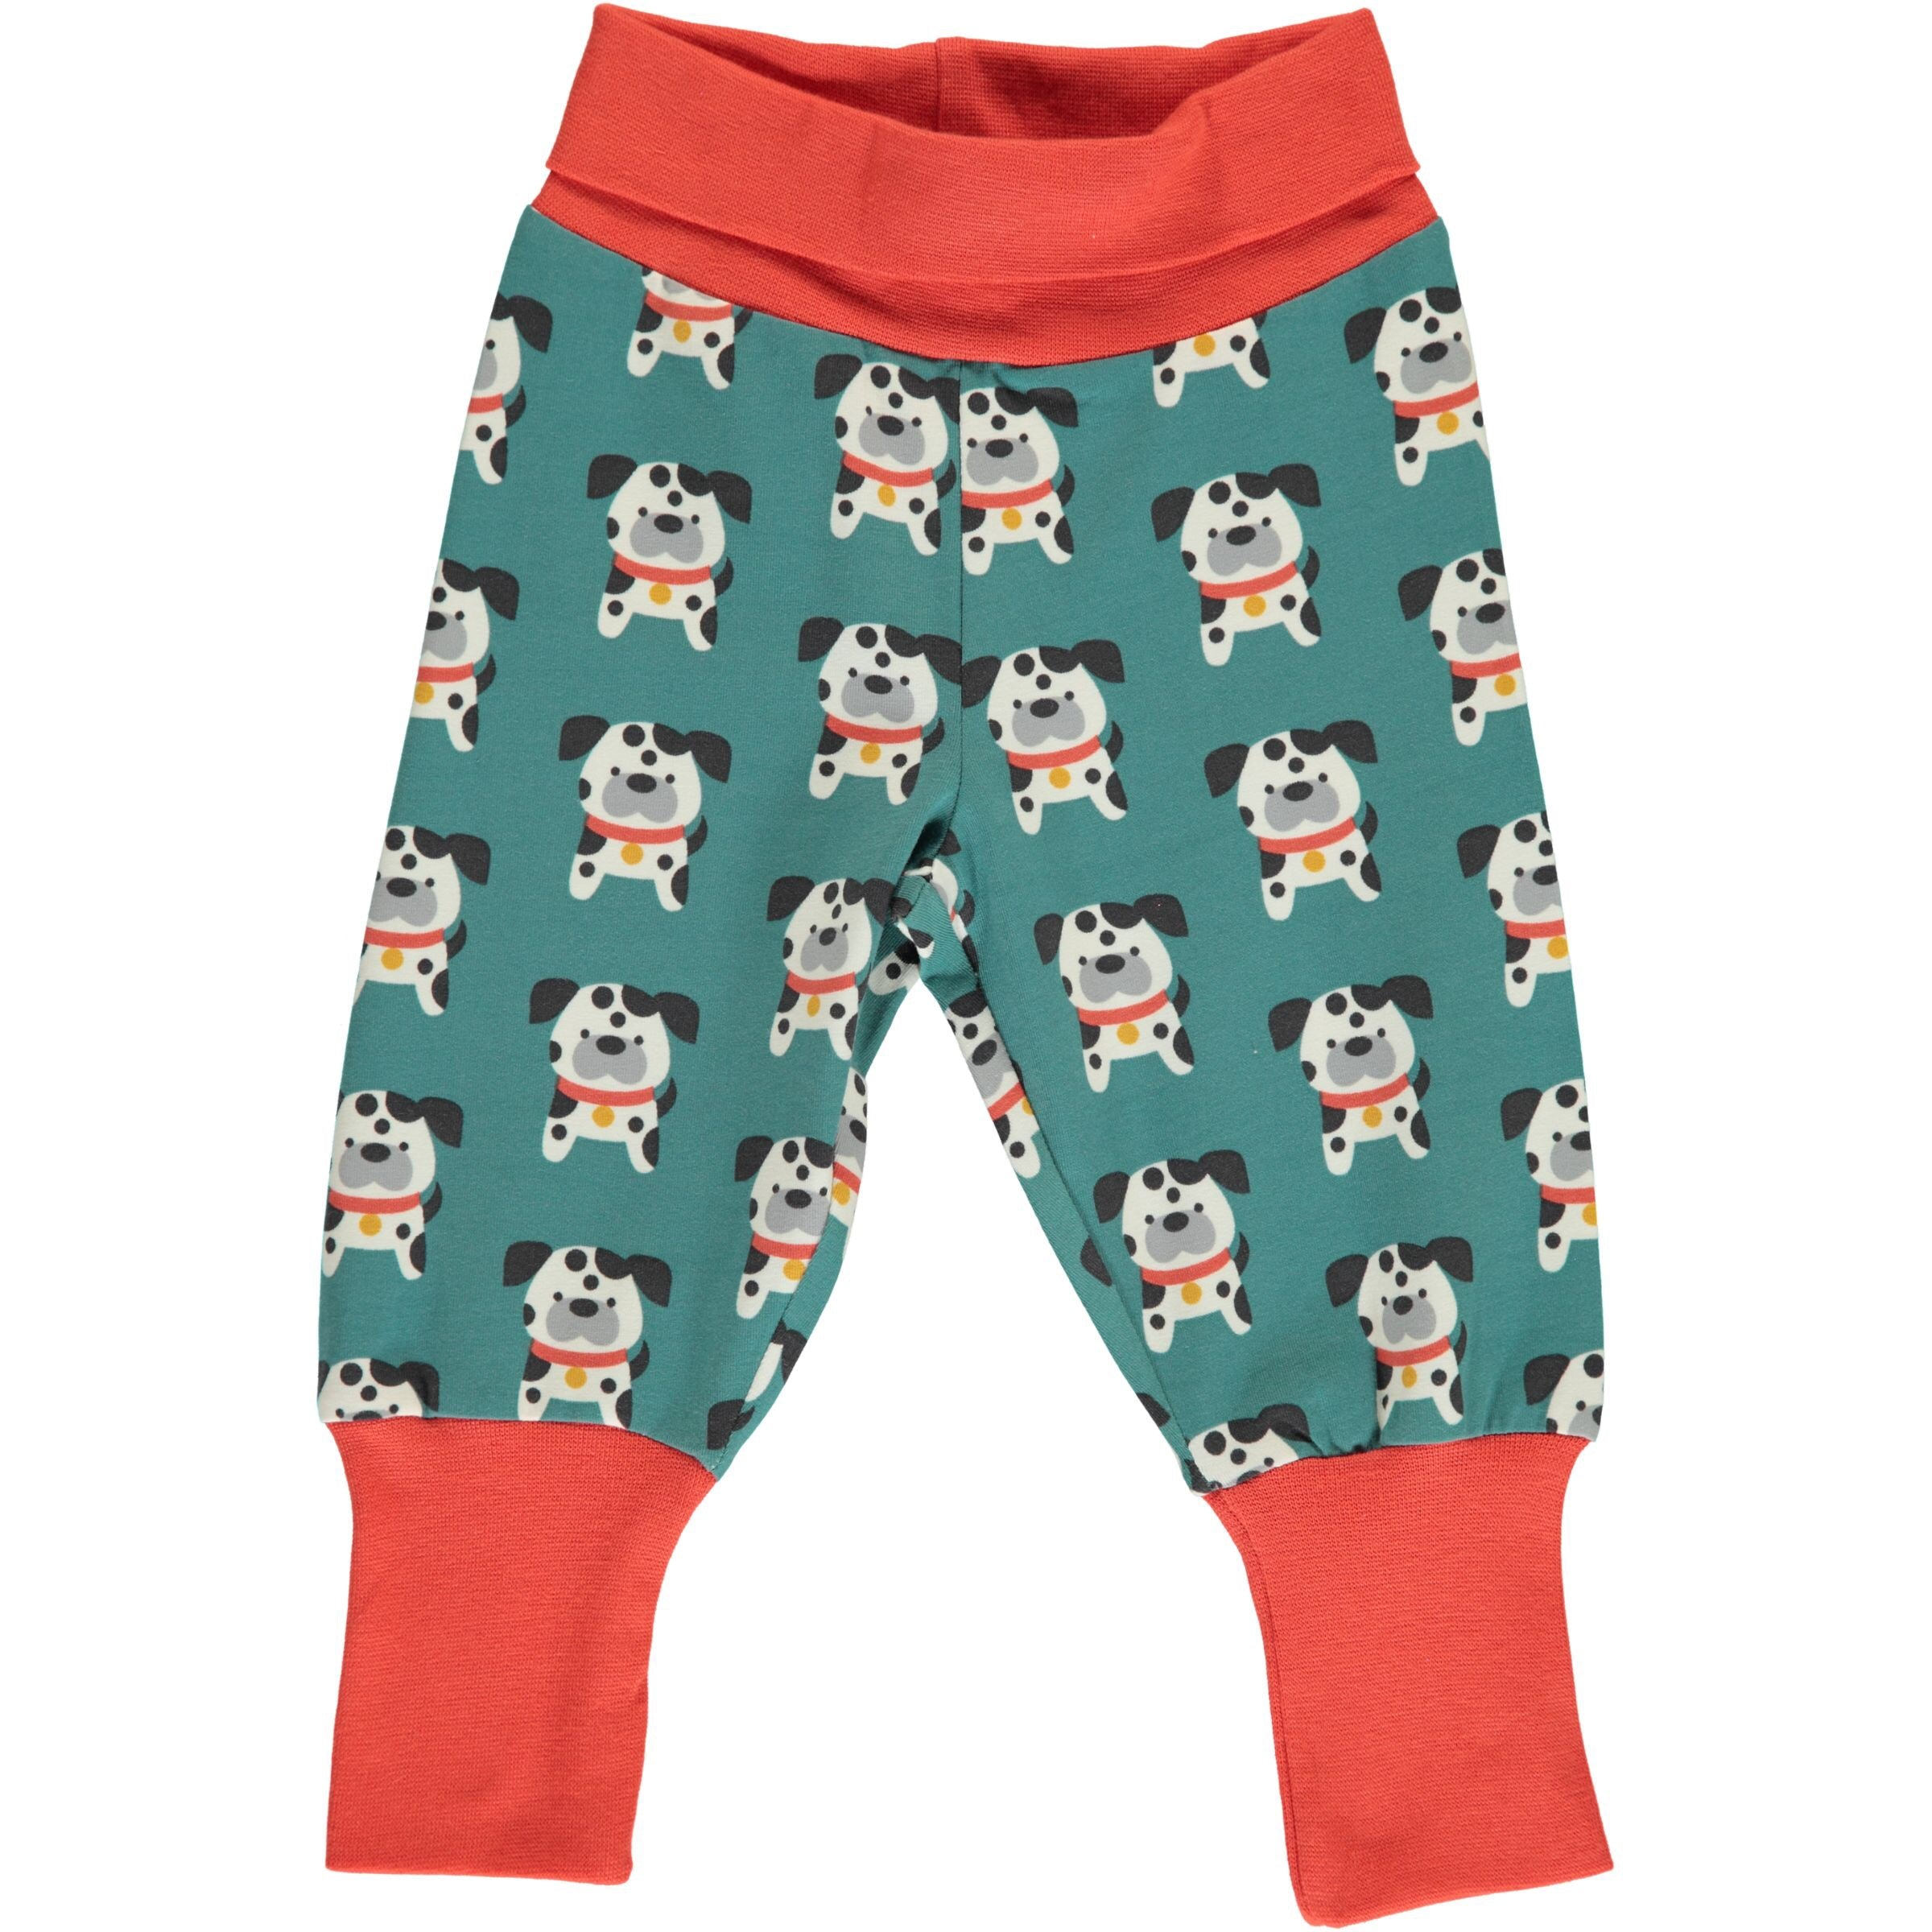 Maxomorra Pants Rib Dalmatian Buddy - little-tiger-togs